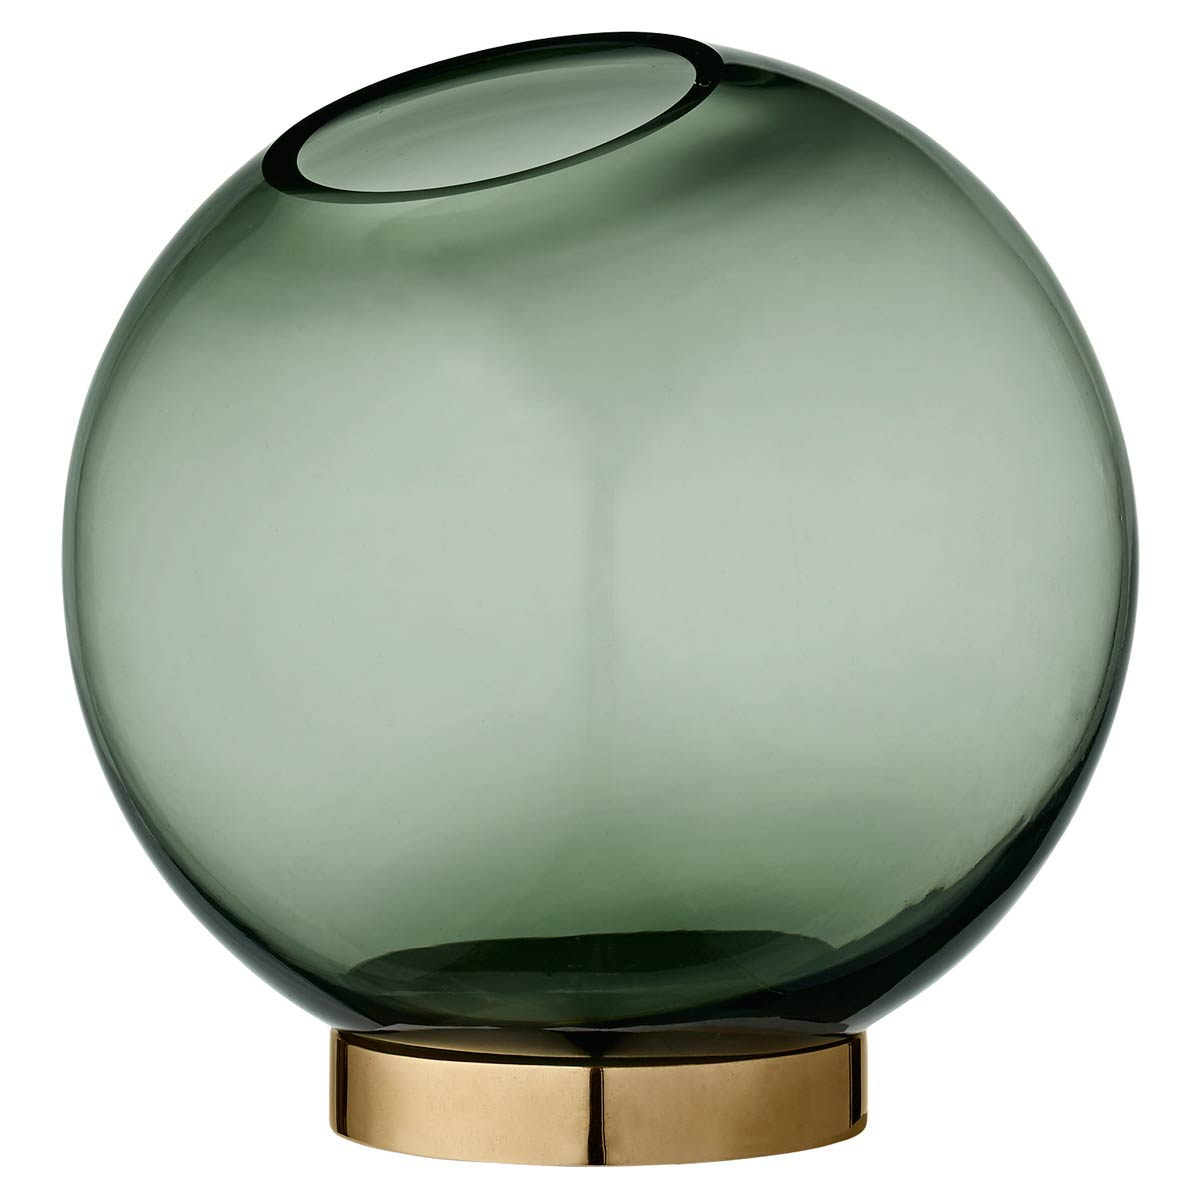 Vase, Globe Medium Green - AYTM - Bild 1